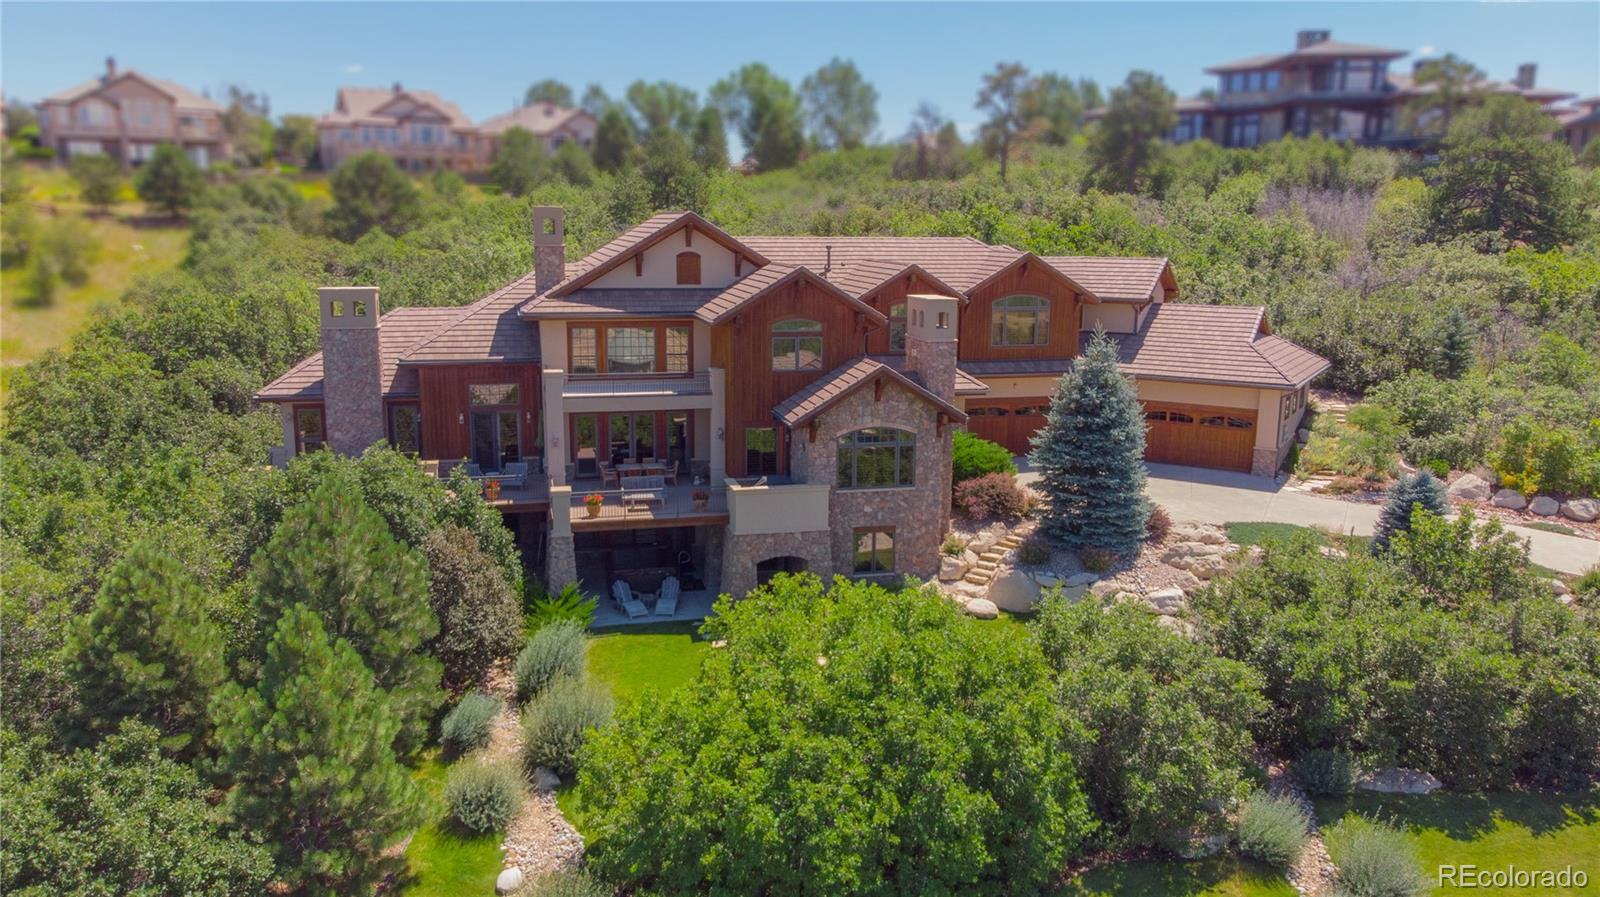 13134 Whisper Canyon Road, Castle Pines, CO 80108 - Castle Pines, CO real estate listing